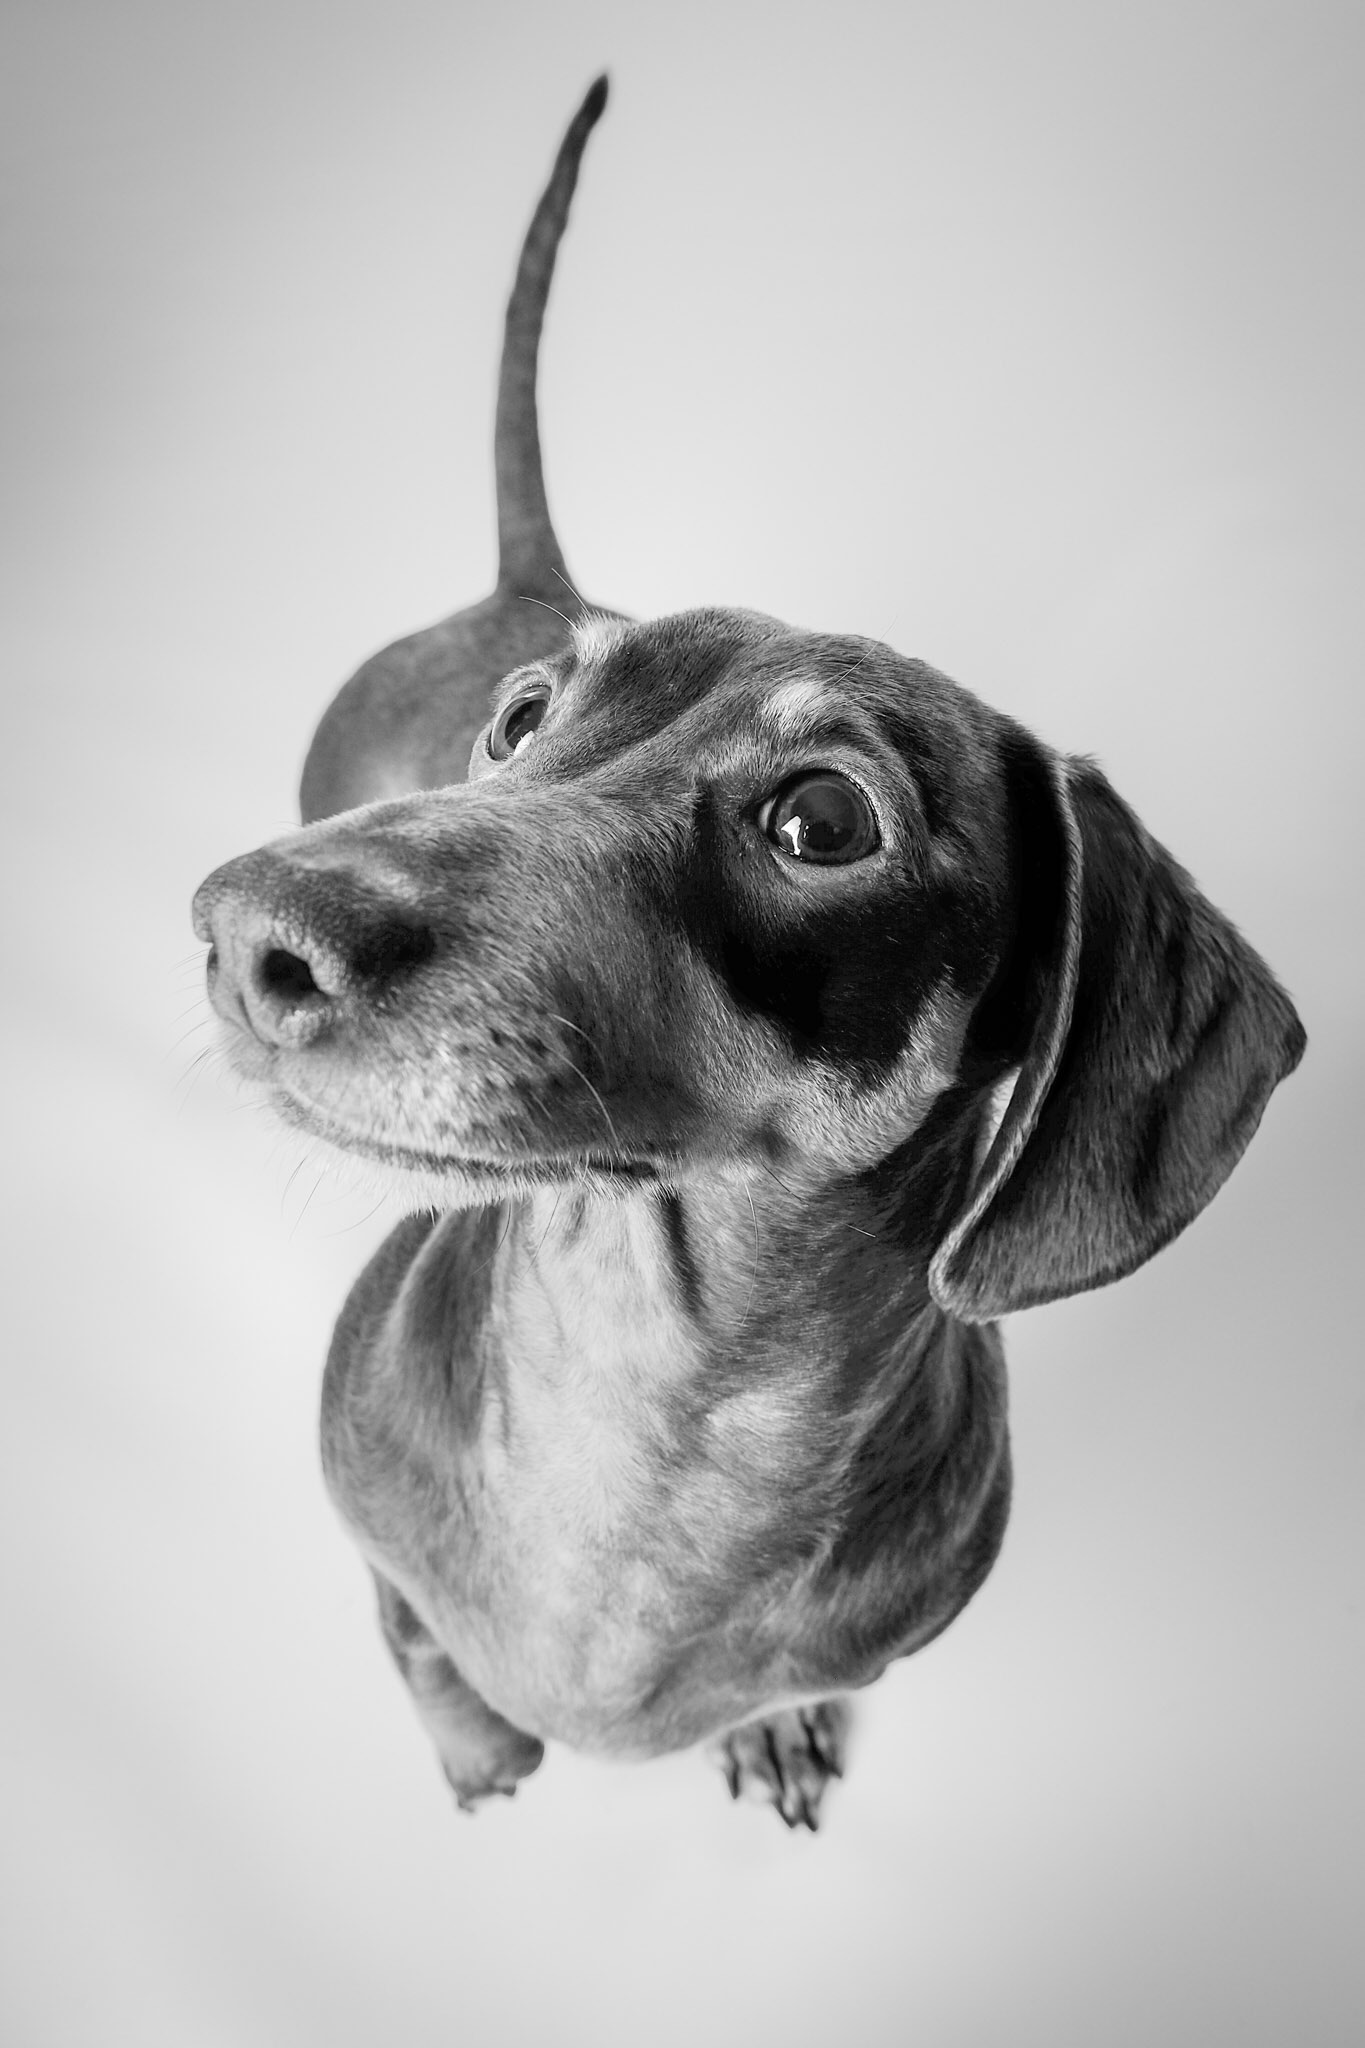 Mabel the Miniature Daxi looking into the camera in black and white